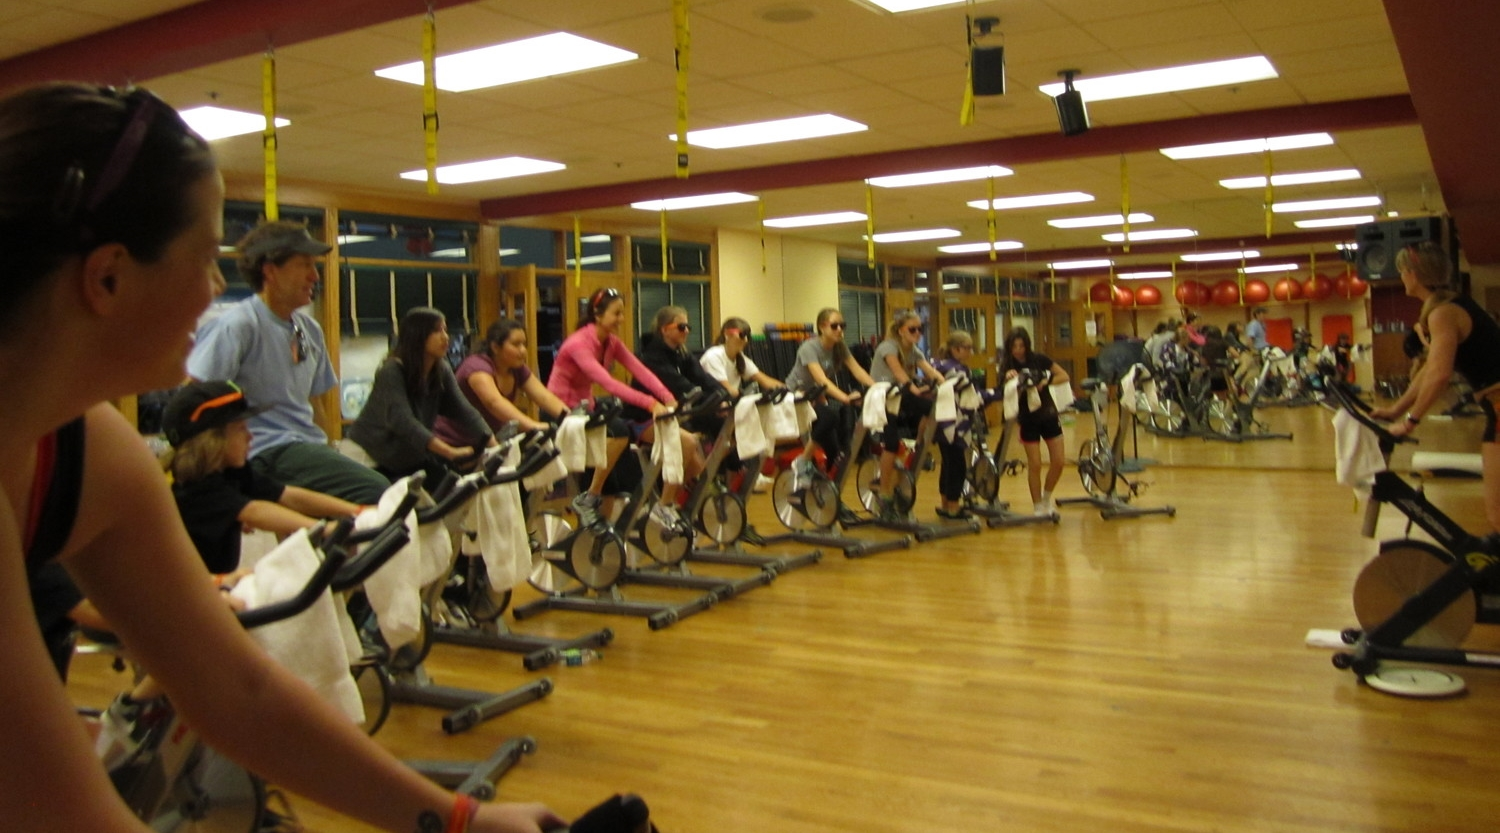 Bike-a-Thon Fundraiser, organized by local Aspen School District students.